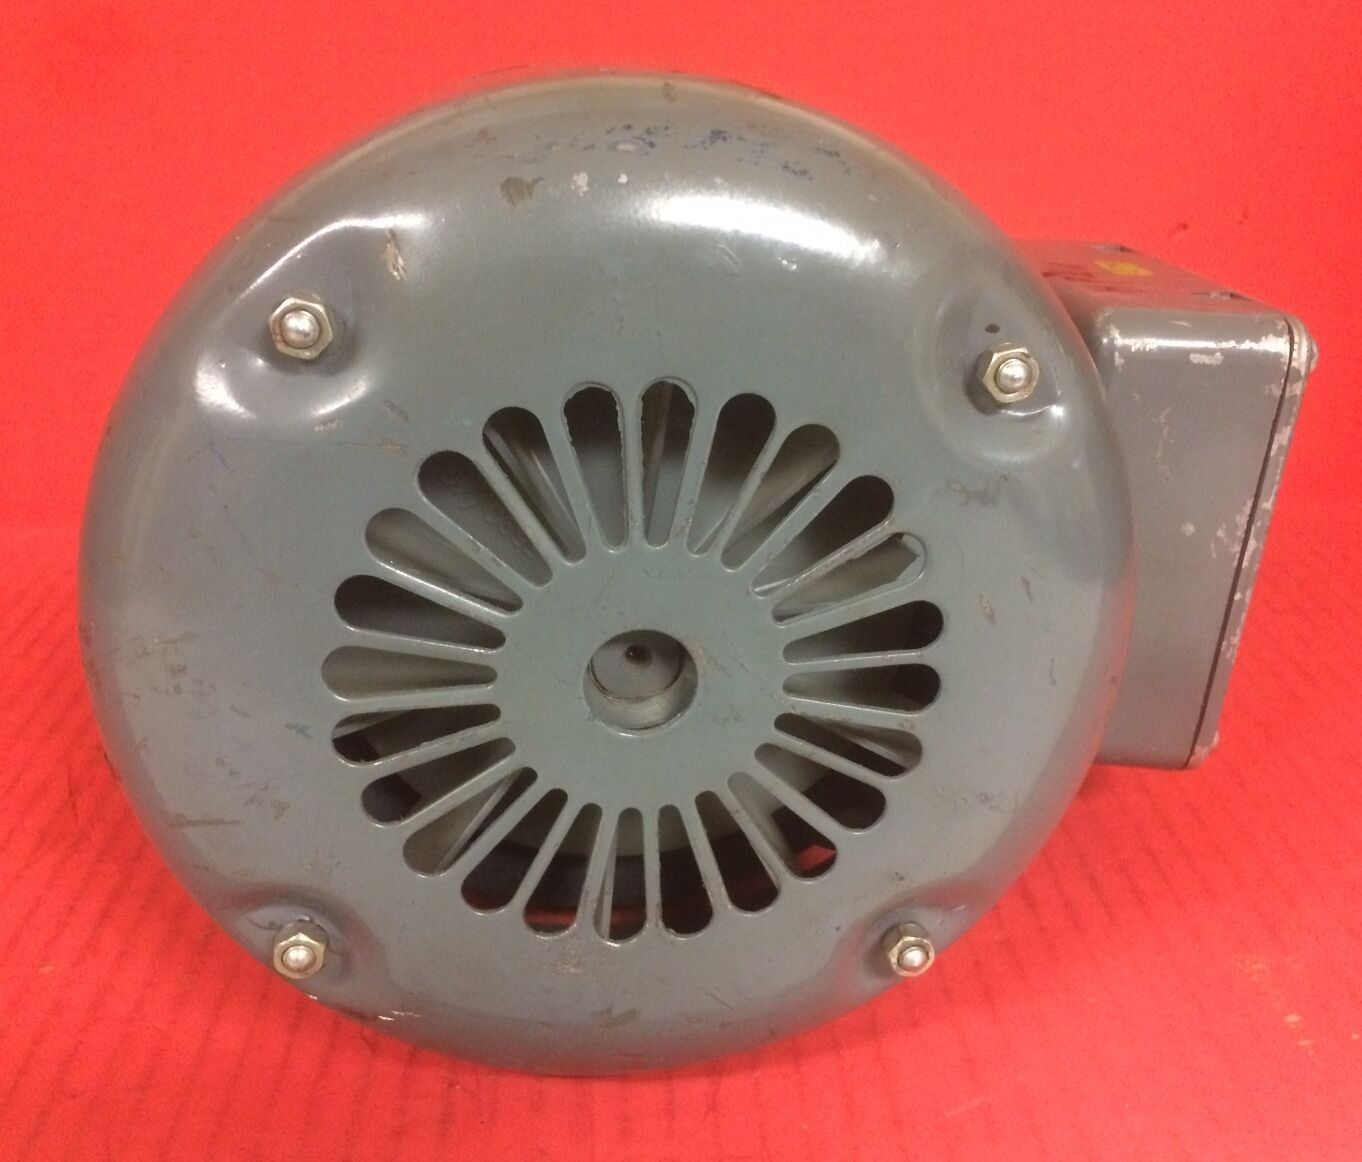 2 of 6 Hawker Siddeley Electric Motor Nr. T386996 - 1/2HP, 1720 RPM, 575V 3 of 6 Hawker Siddeley Electric Motor ...